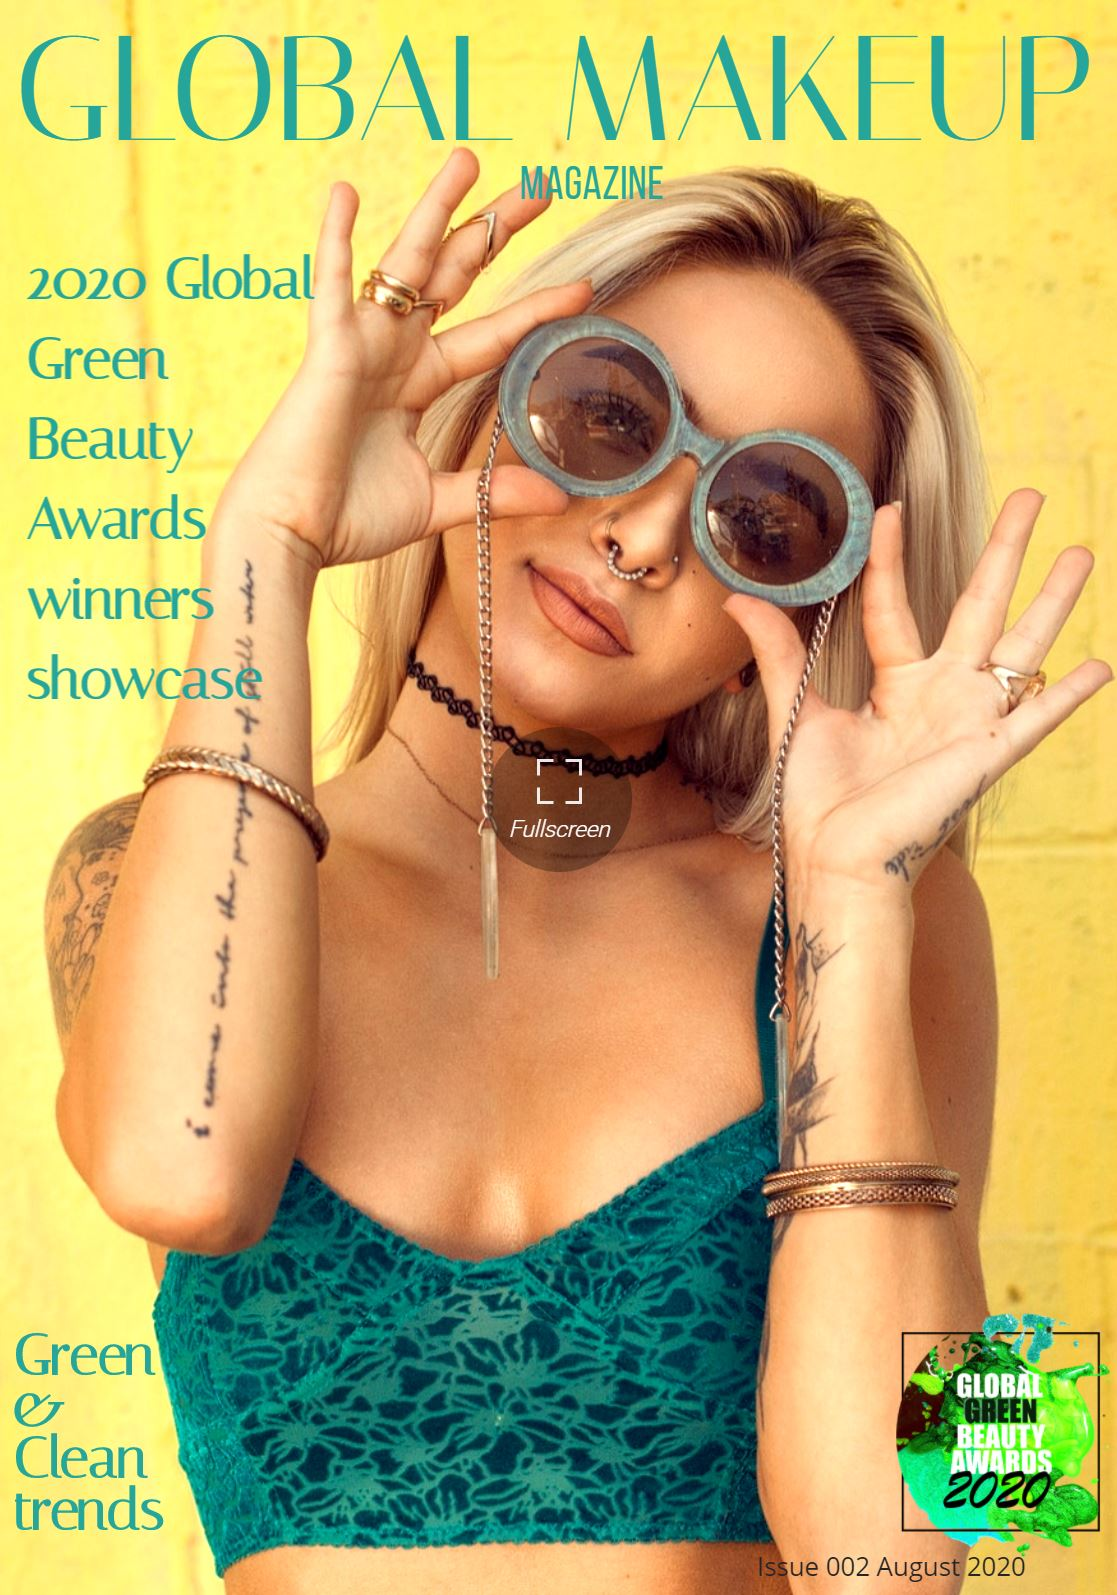 Dollbaby London Won a Forth Award at the 2020 Global Green Beauty Awards!